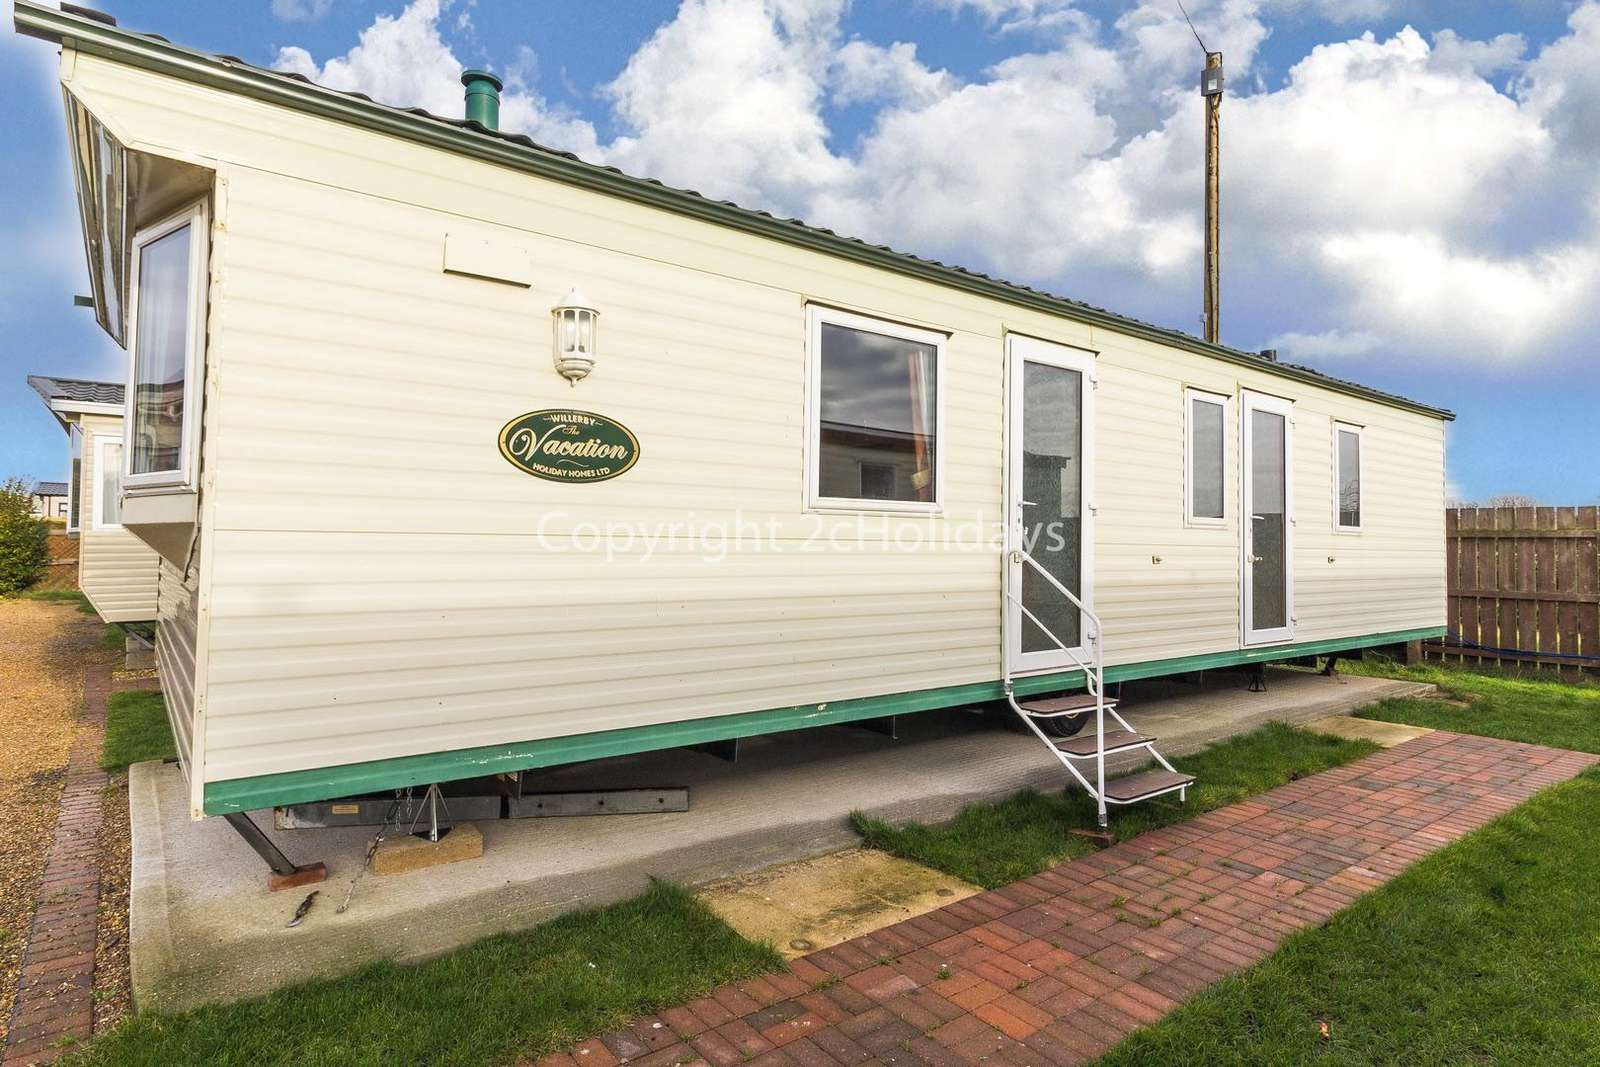 Seaside holidays are made in Hunstanton look at our reviews on the Lees holiday park in Hunstanton.